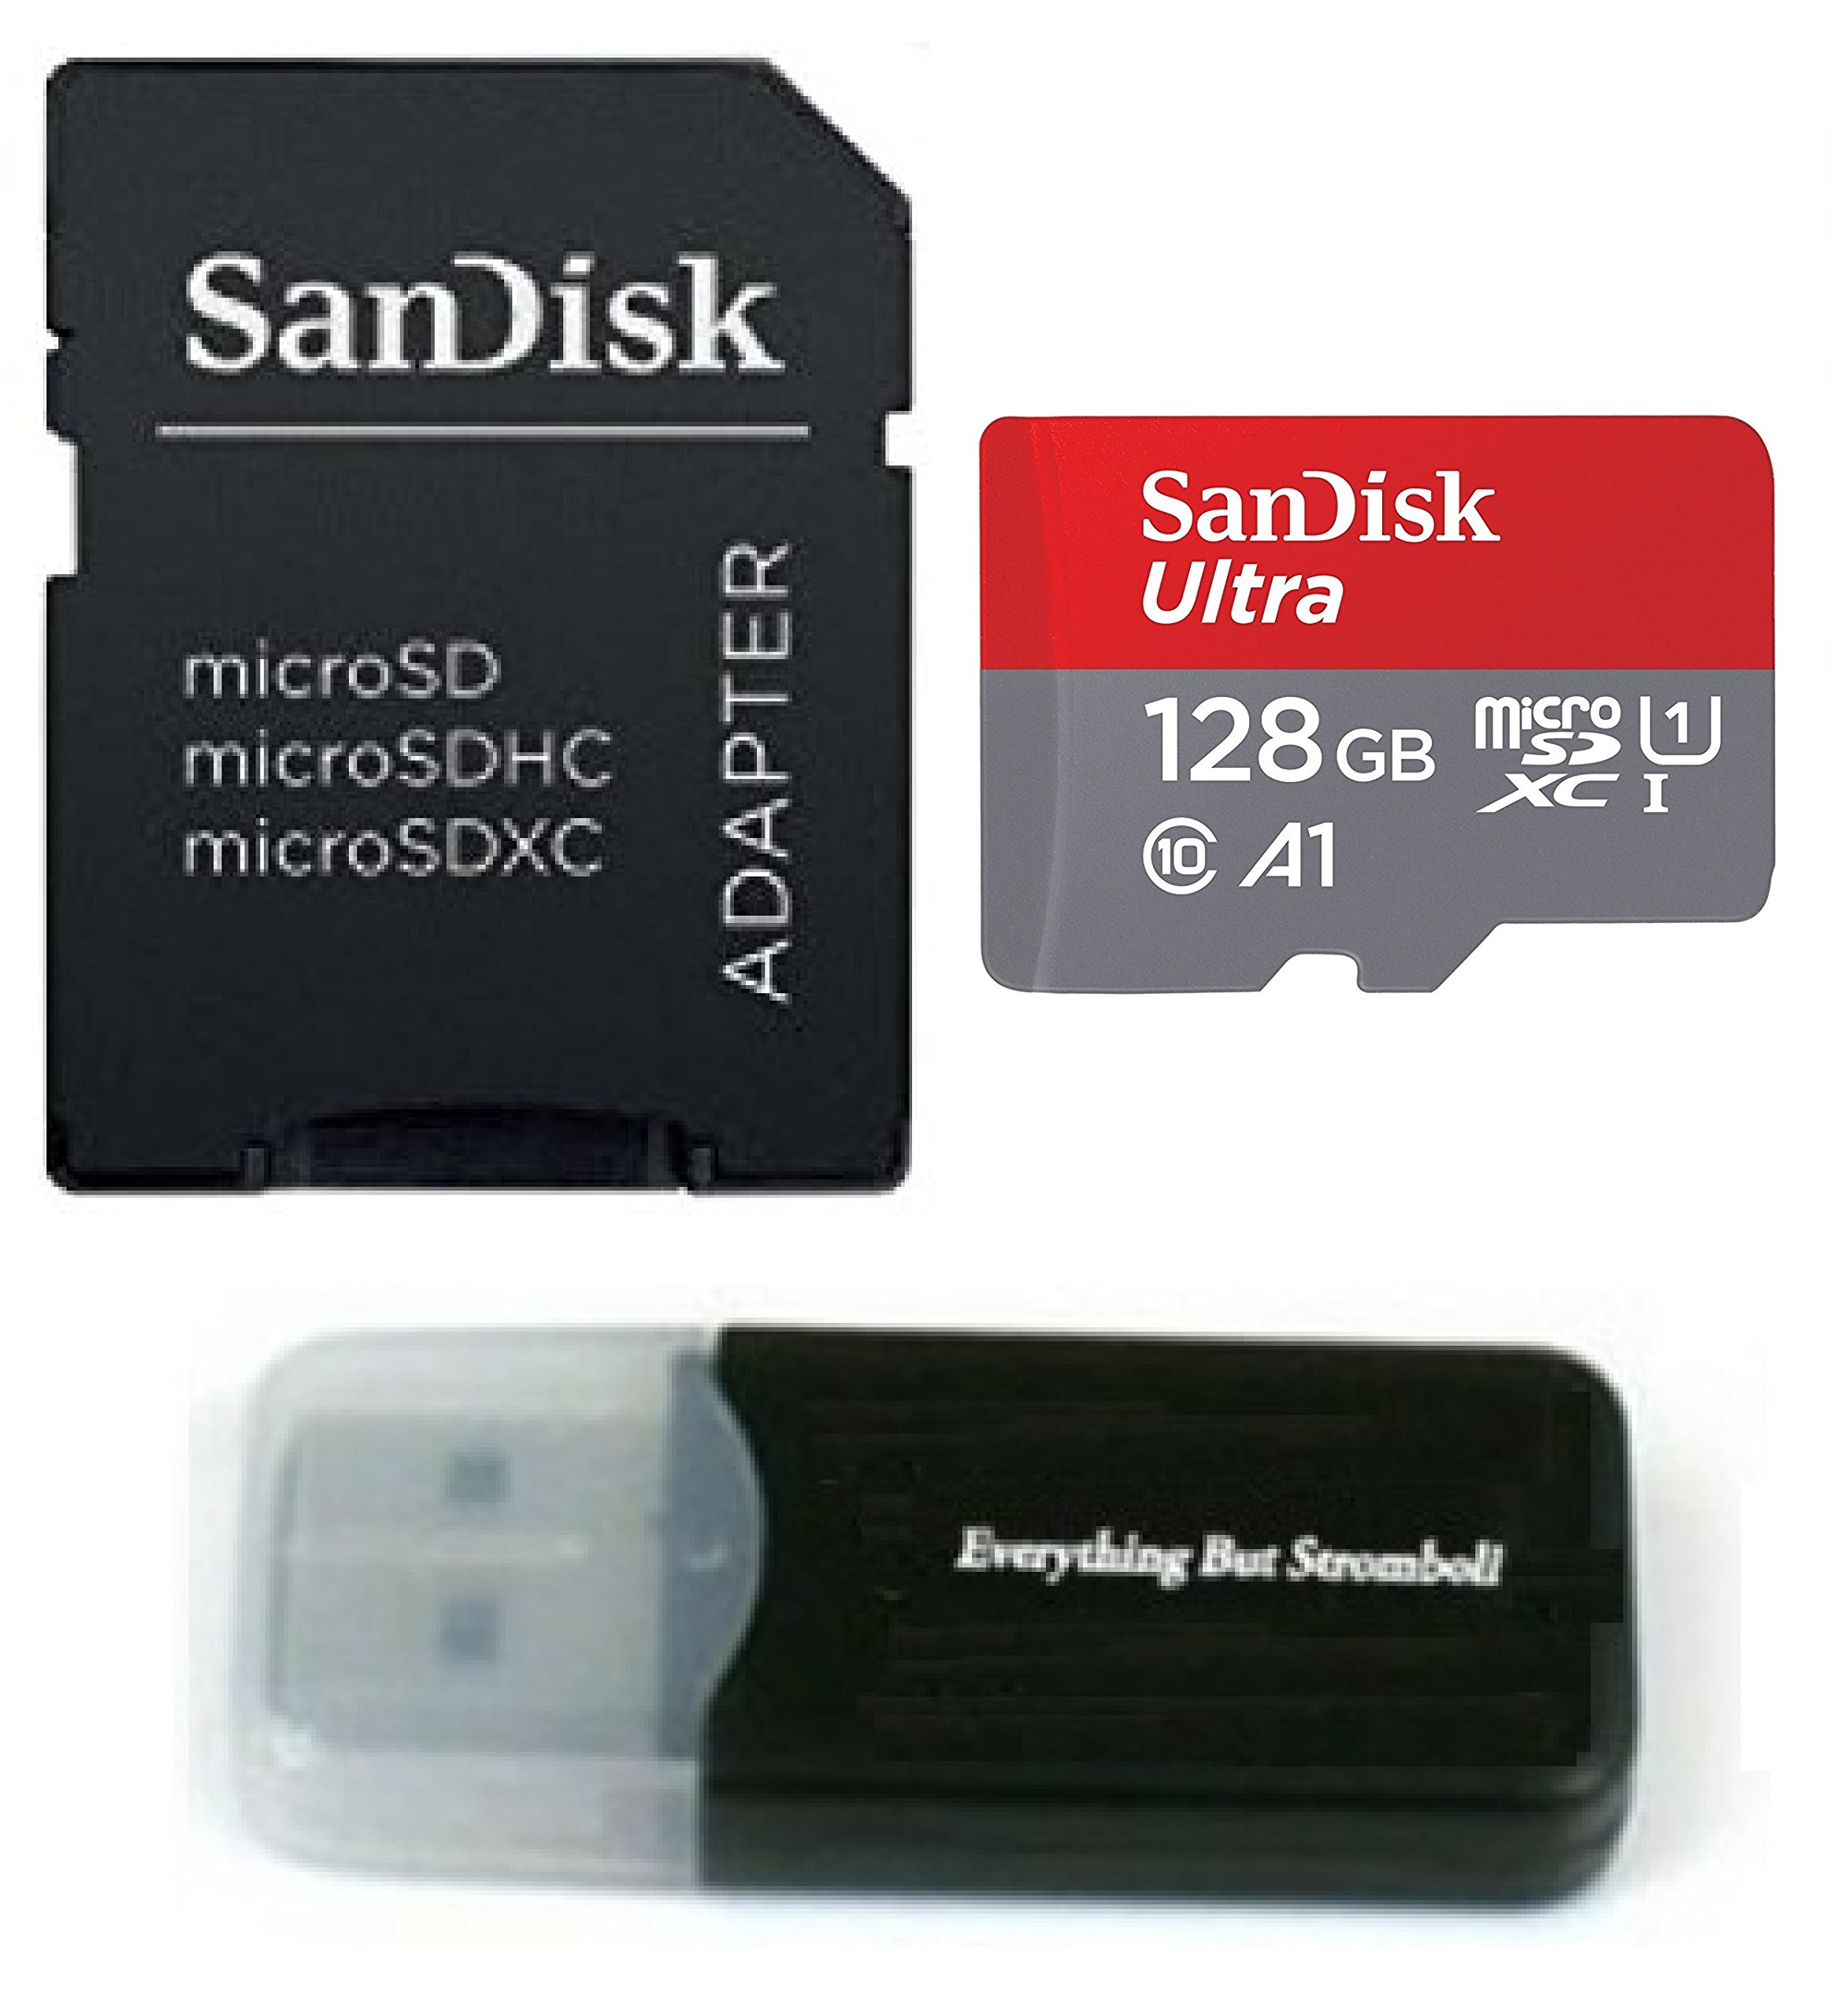 Samsung Galaxy S9 Memory Card SanDisk 128GB Ultra Micro SD SDXC UHS-I Class 10 for S9+, S9 Plus (SDSQUAR-128G-GN6MA) with Everything But Stromboli (TM) Card Reader (Class 10 128GB)